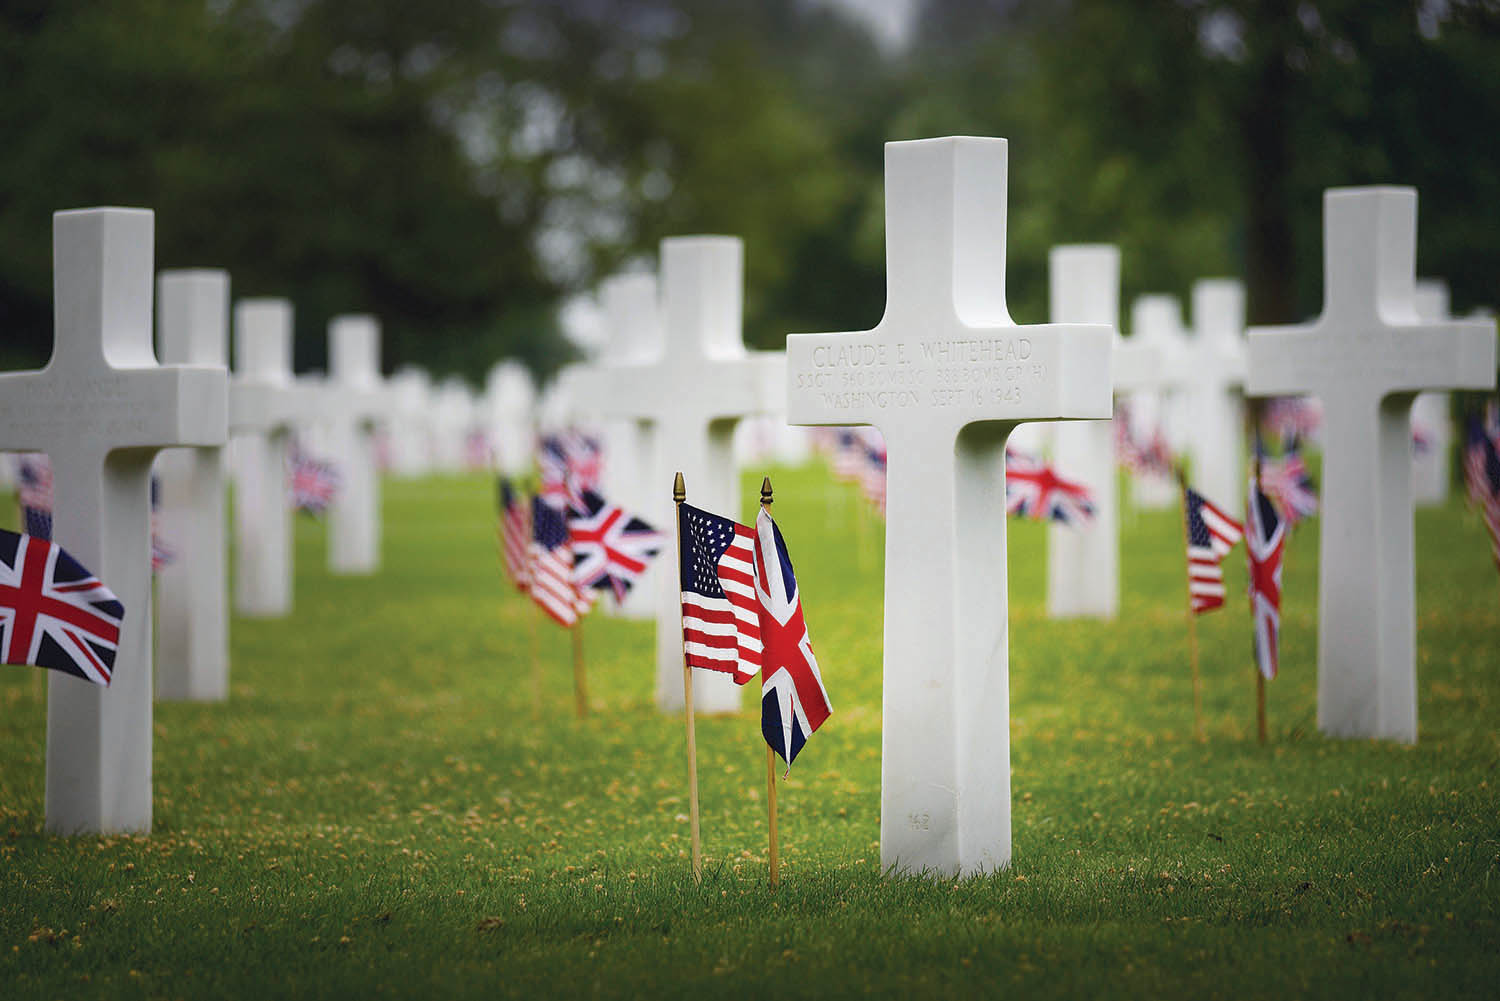 Headstones at Madingley American Cemetery, in Cambridge, England, mark the graves of U.S. Army, Army Air Corps, Navy, Marine Corps and Coast Guard members, but mostly airmen. Eck laid a wreath at the cemetery during a Memorial Day ceremony in 2011. Photo courtesy of U.S. Air Force